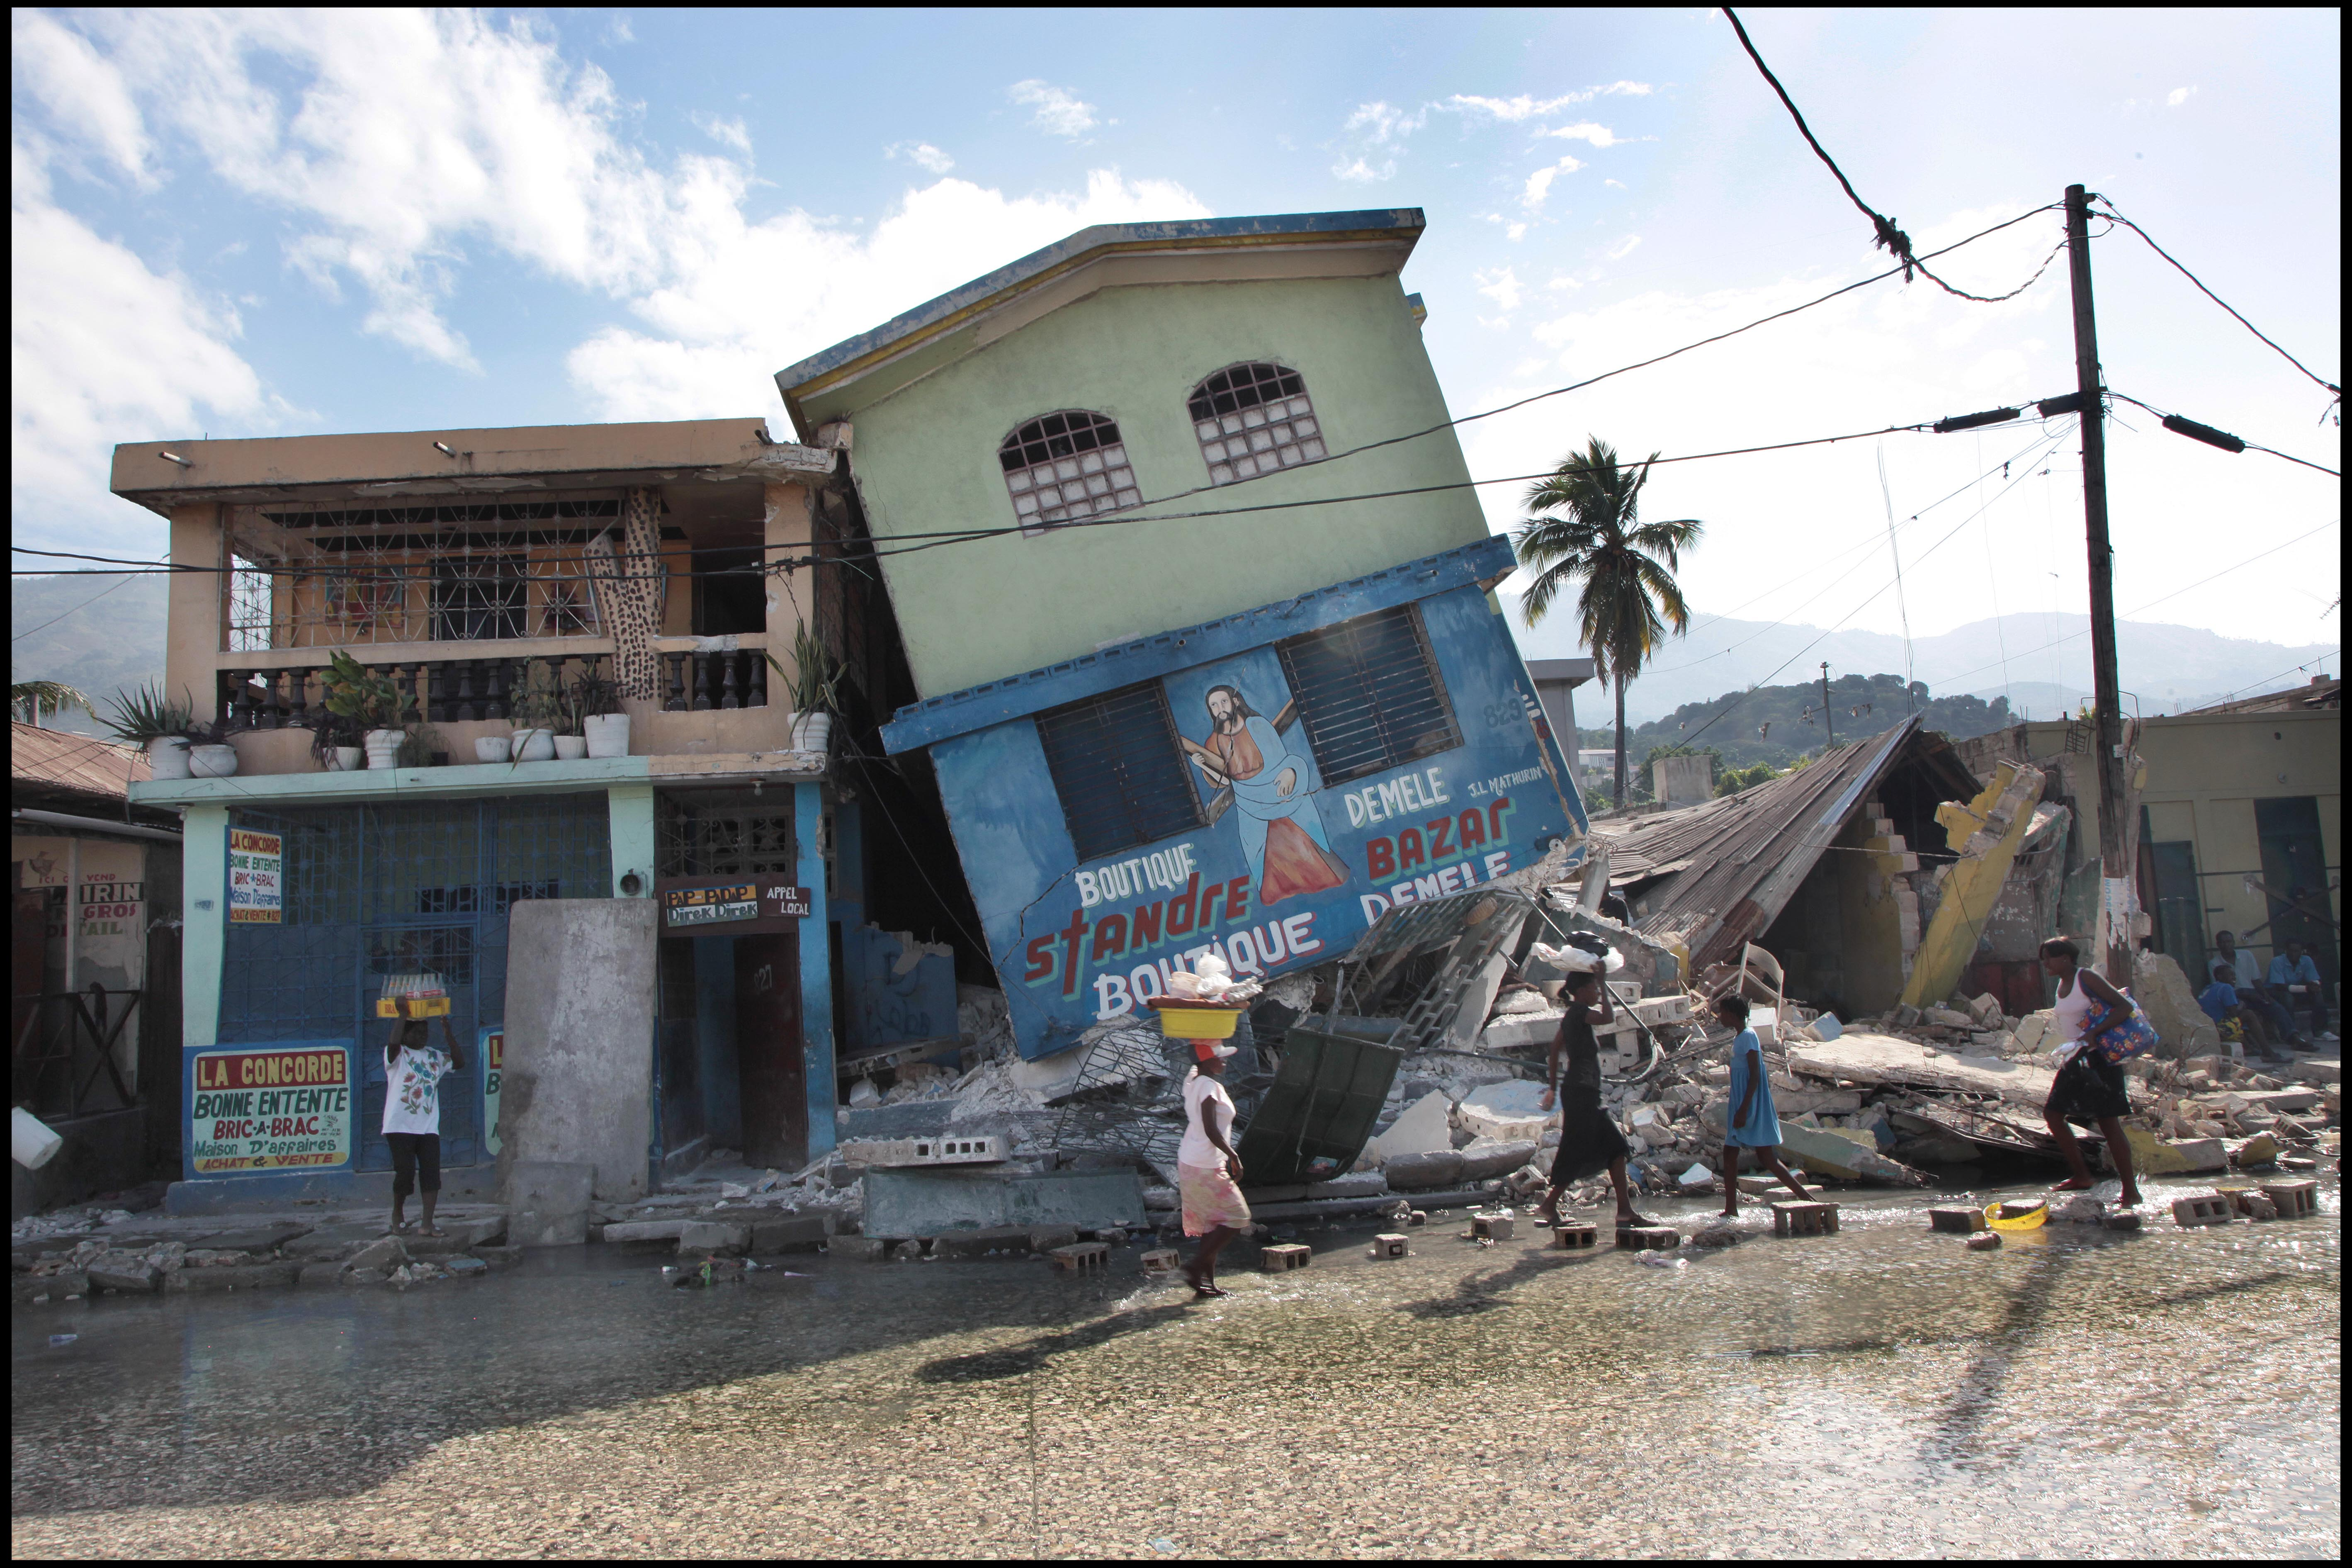 A ruined building in Port au Prince